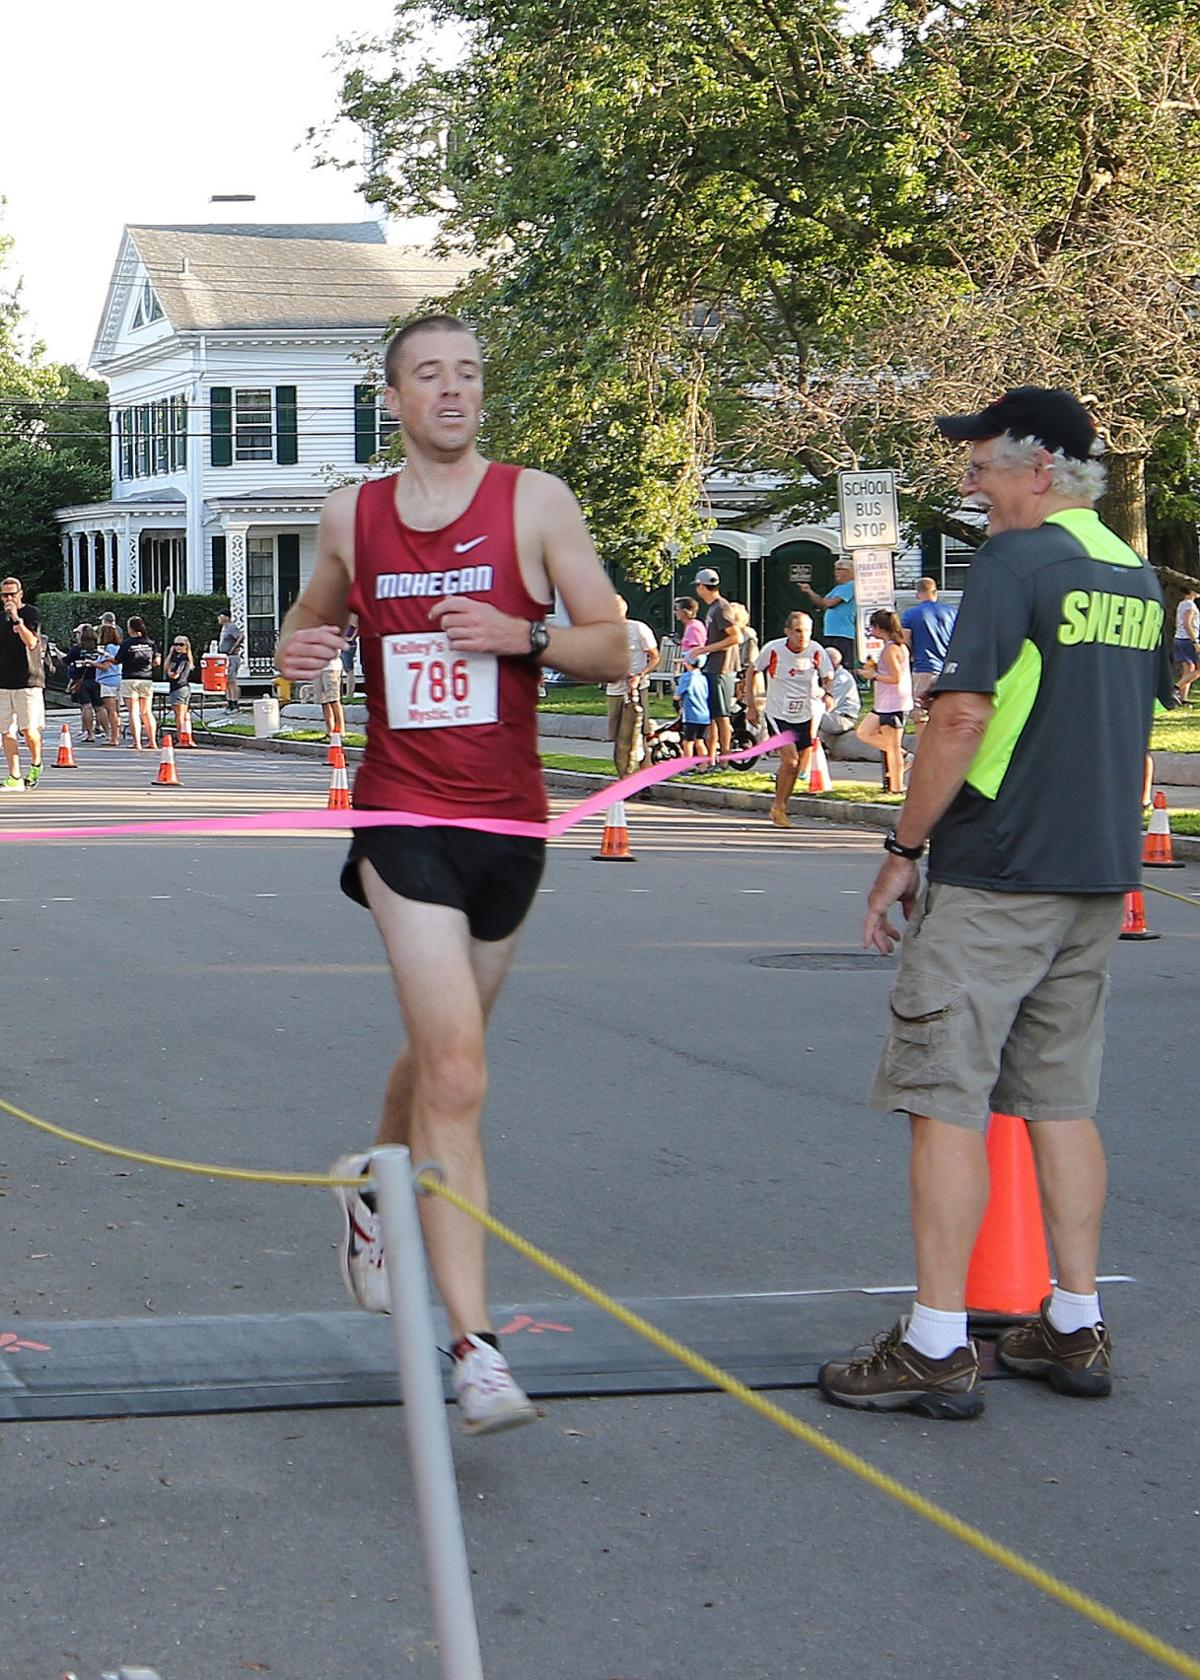 "Across the ""Battle of Stonington 5k"" finish line first overall is North Stonington's Mark Olivier with an official time of 16:23. The 34 year old runner is a two-time winner of the event having won in 2018 with a slightly faster time of 15:59. The event was held Tuesday evening, August 24th, 2019 in Stonington Borough. 